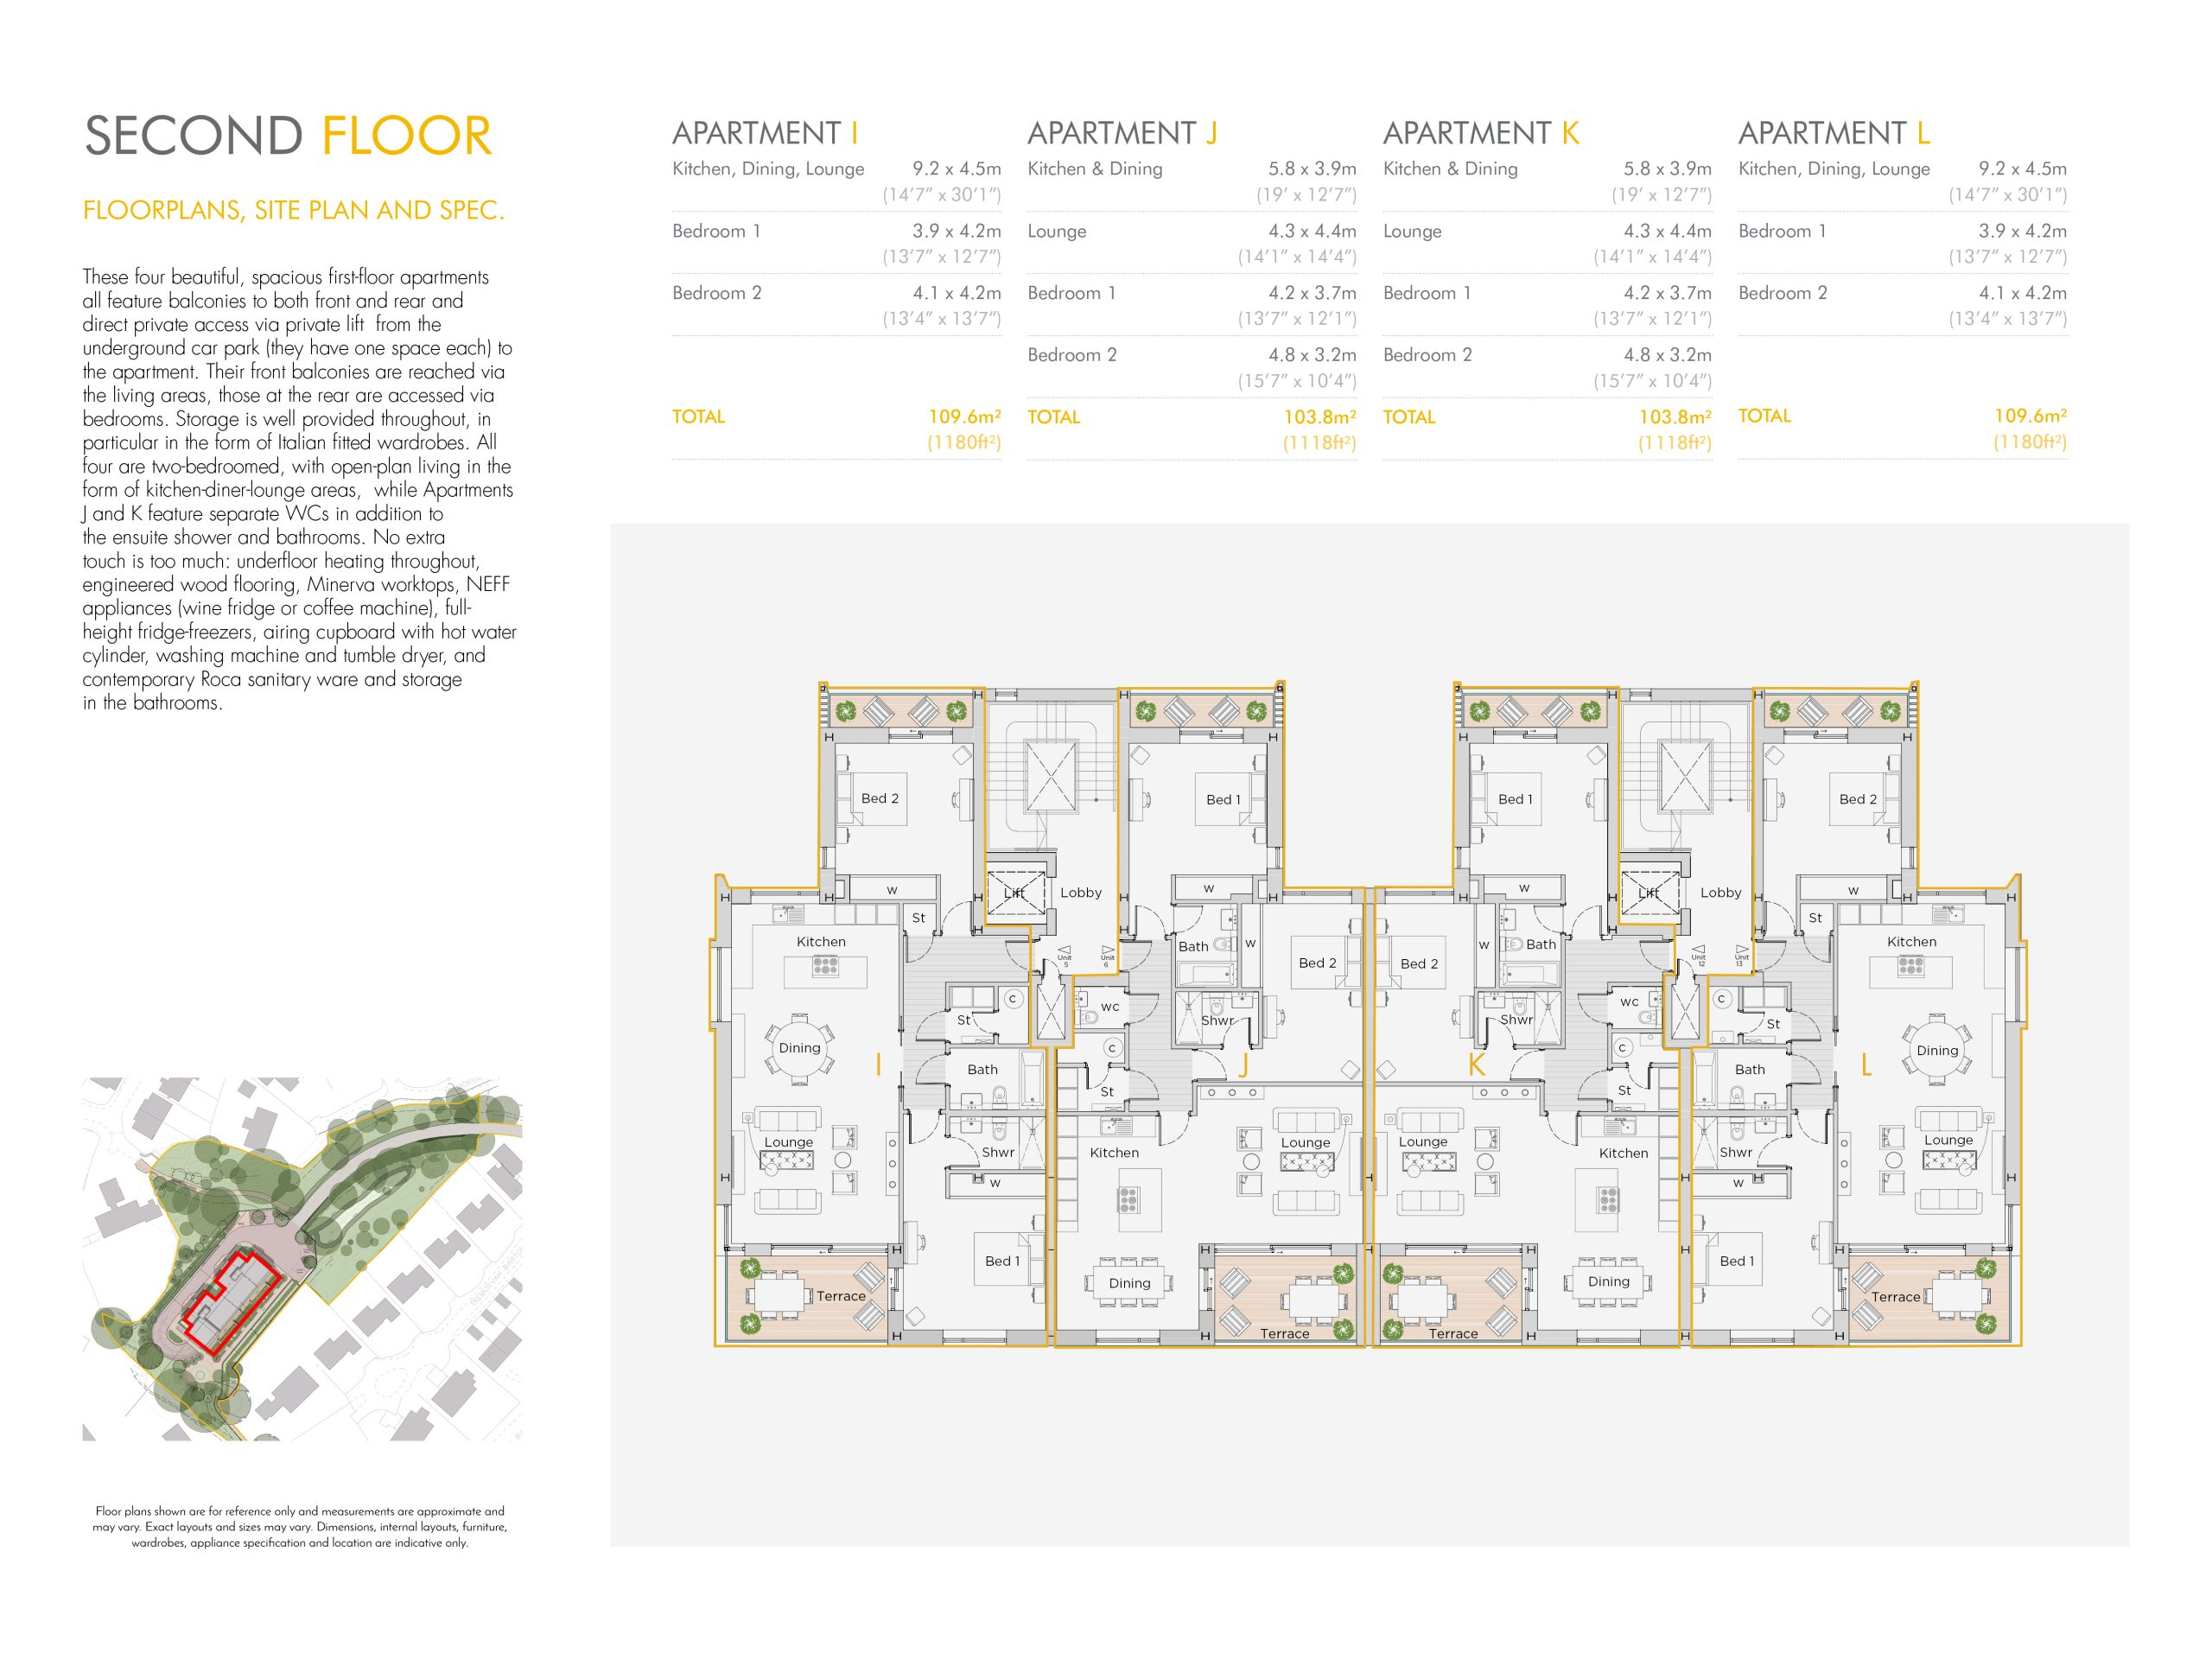 Stephens and stephens developers The Hideaway Truro cornwall Floorplans 1200x900 second floor